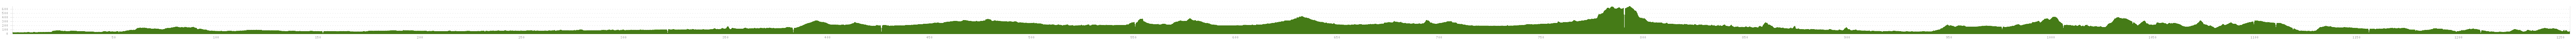 Elevation profile Cycle Tour Postdam - Brussels